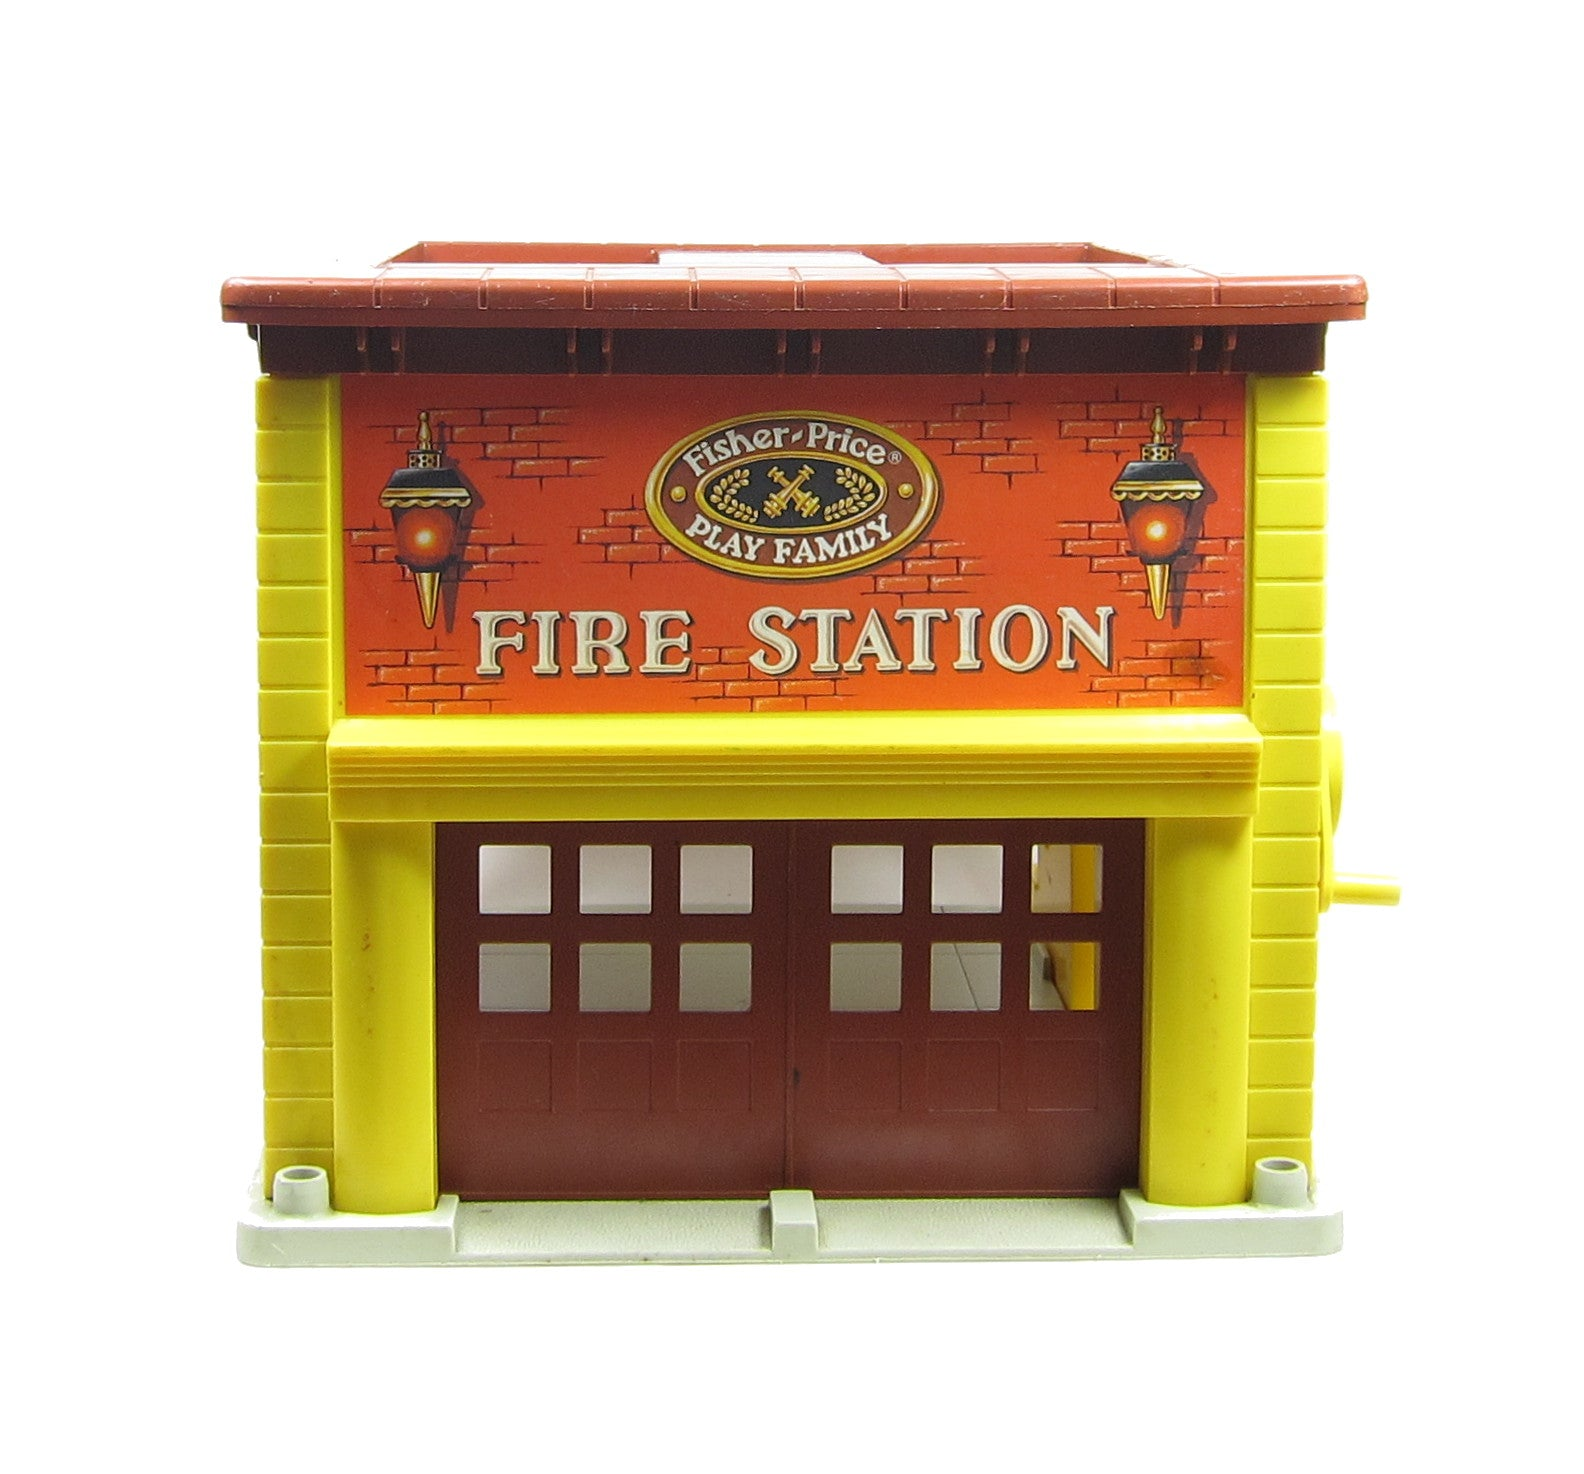 Fisher-Price Fire Station Play Family Little People playset